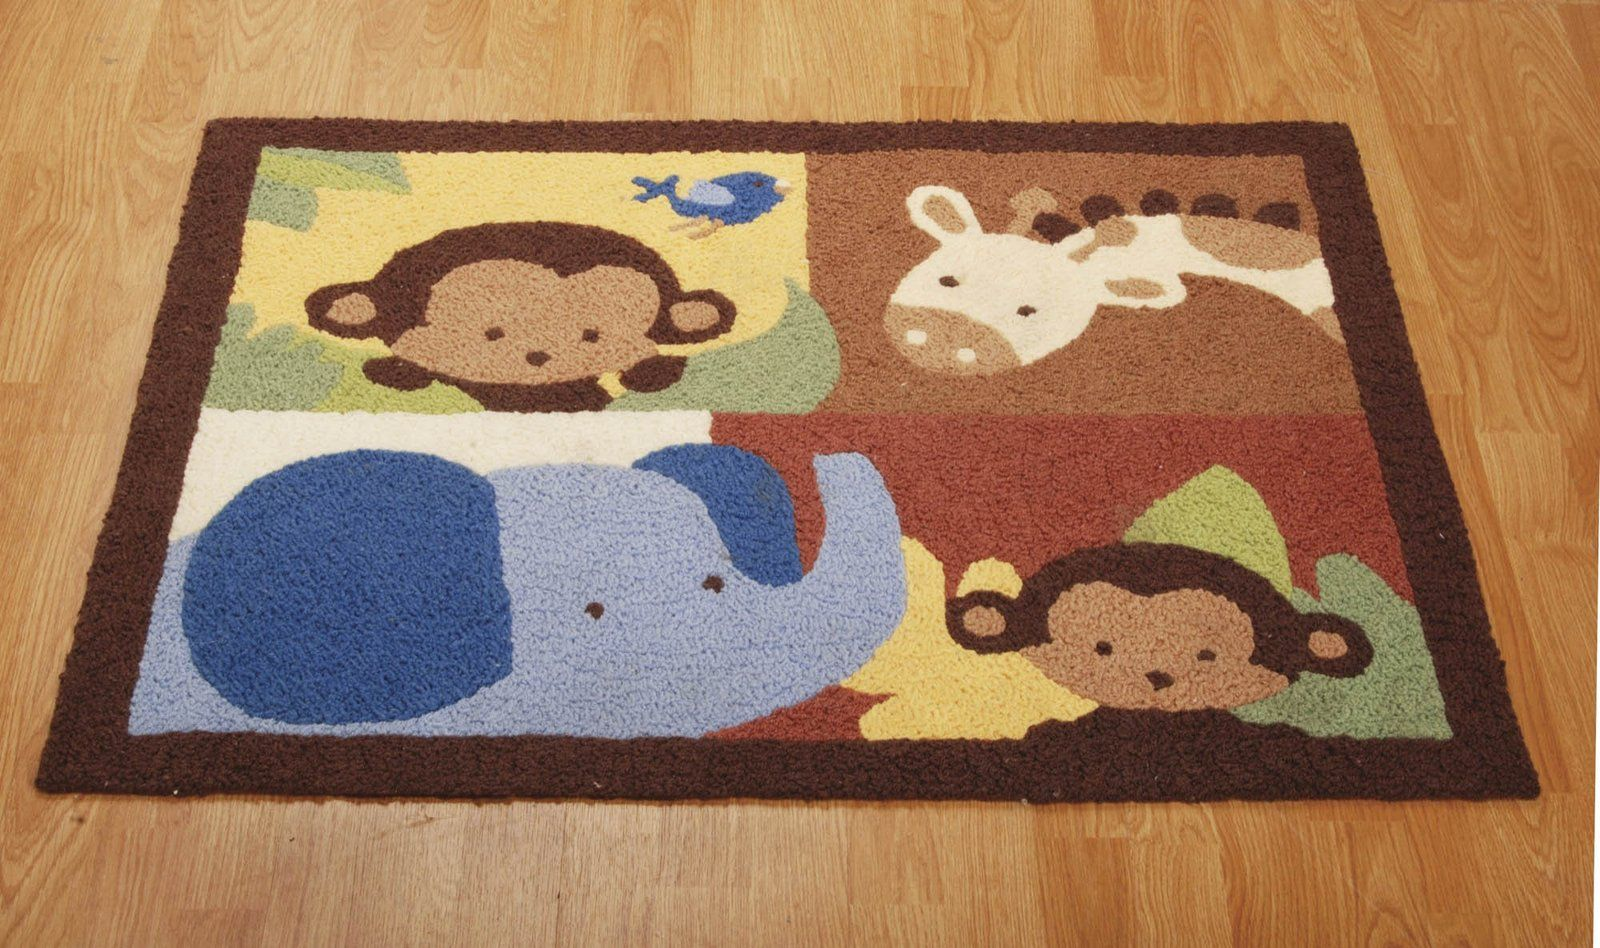 I Wish This Rug Can Be Ger It Has To Able Fit Paul S There Too Kids Line Jungle 123 Diaperscomnursery